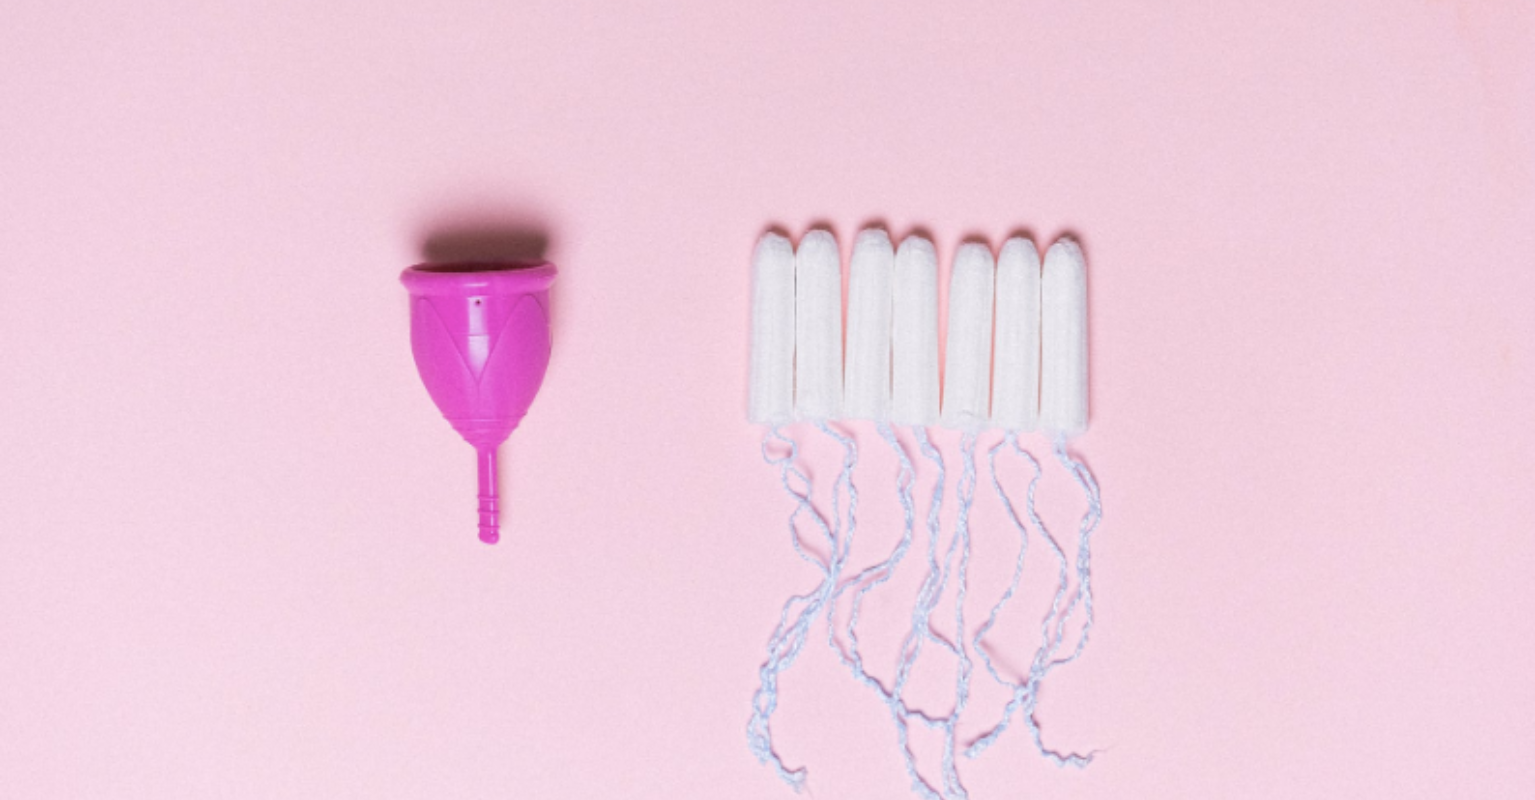 New Zealand to give free sanitary products to schoolgirls